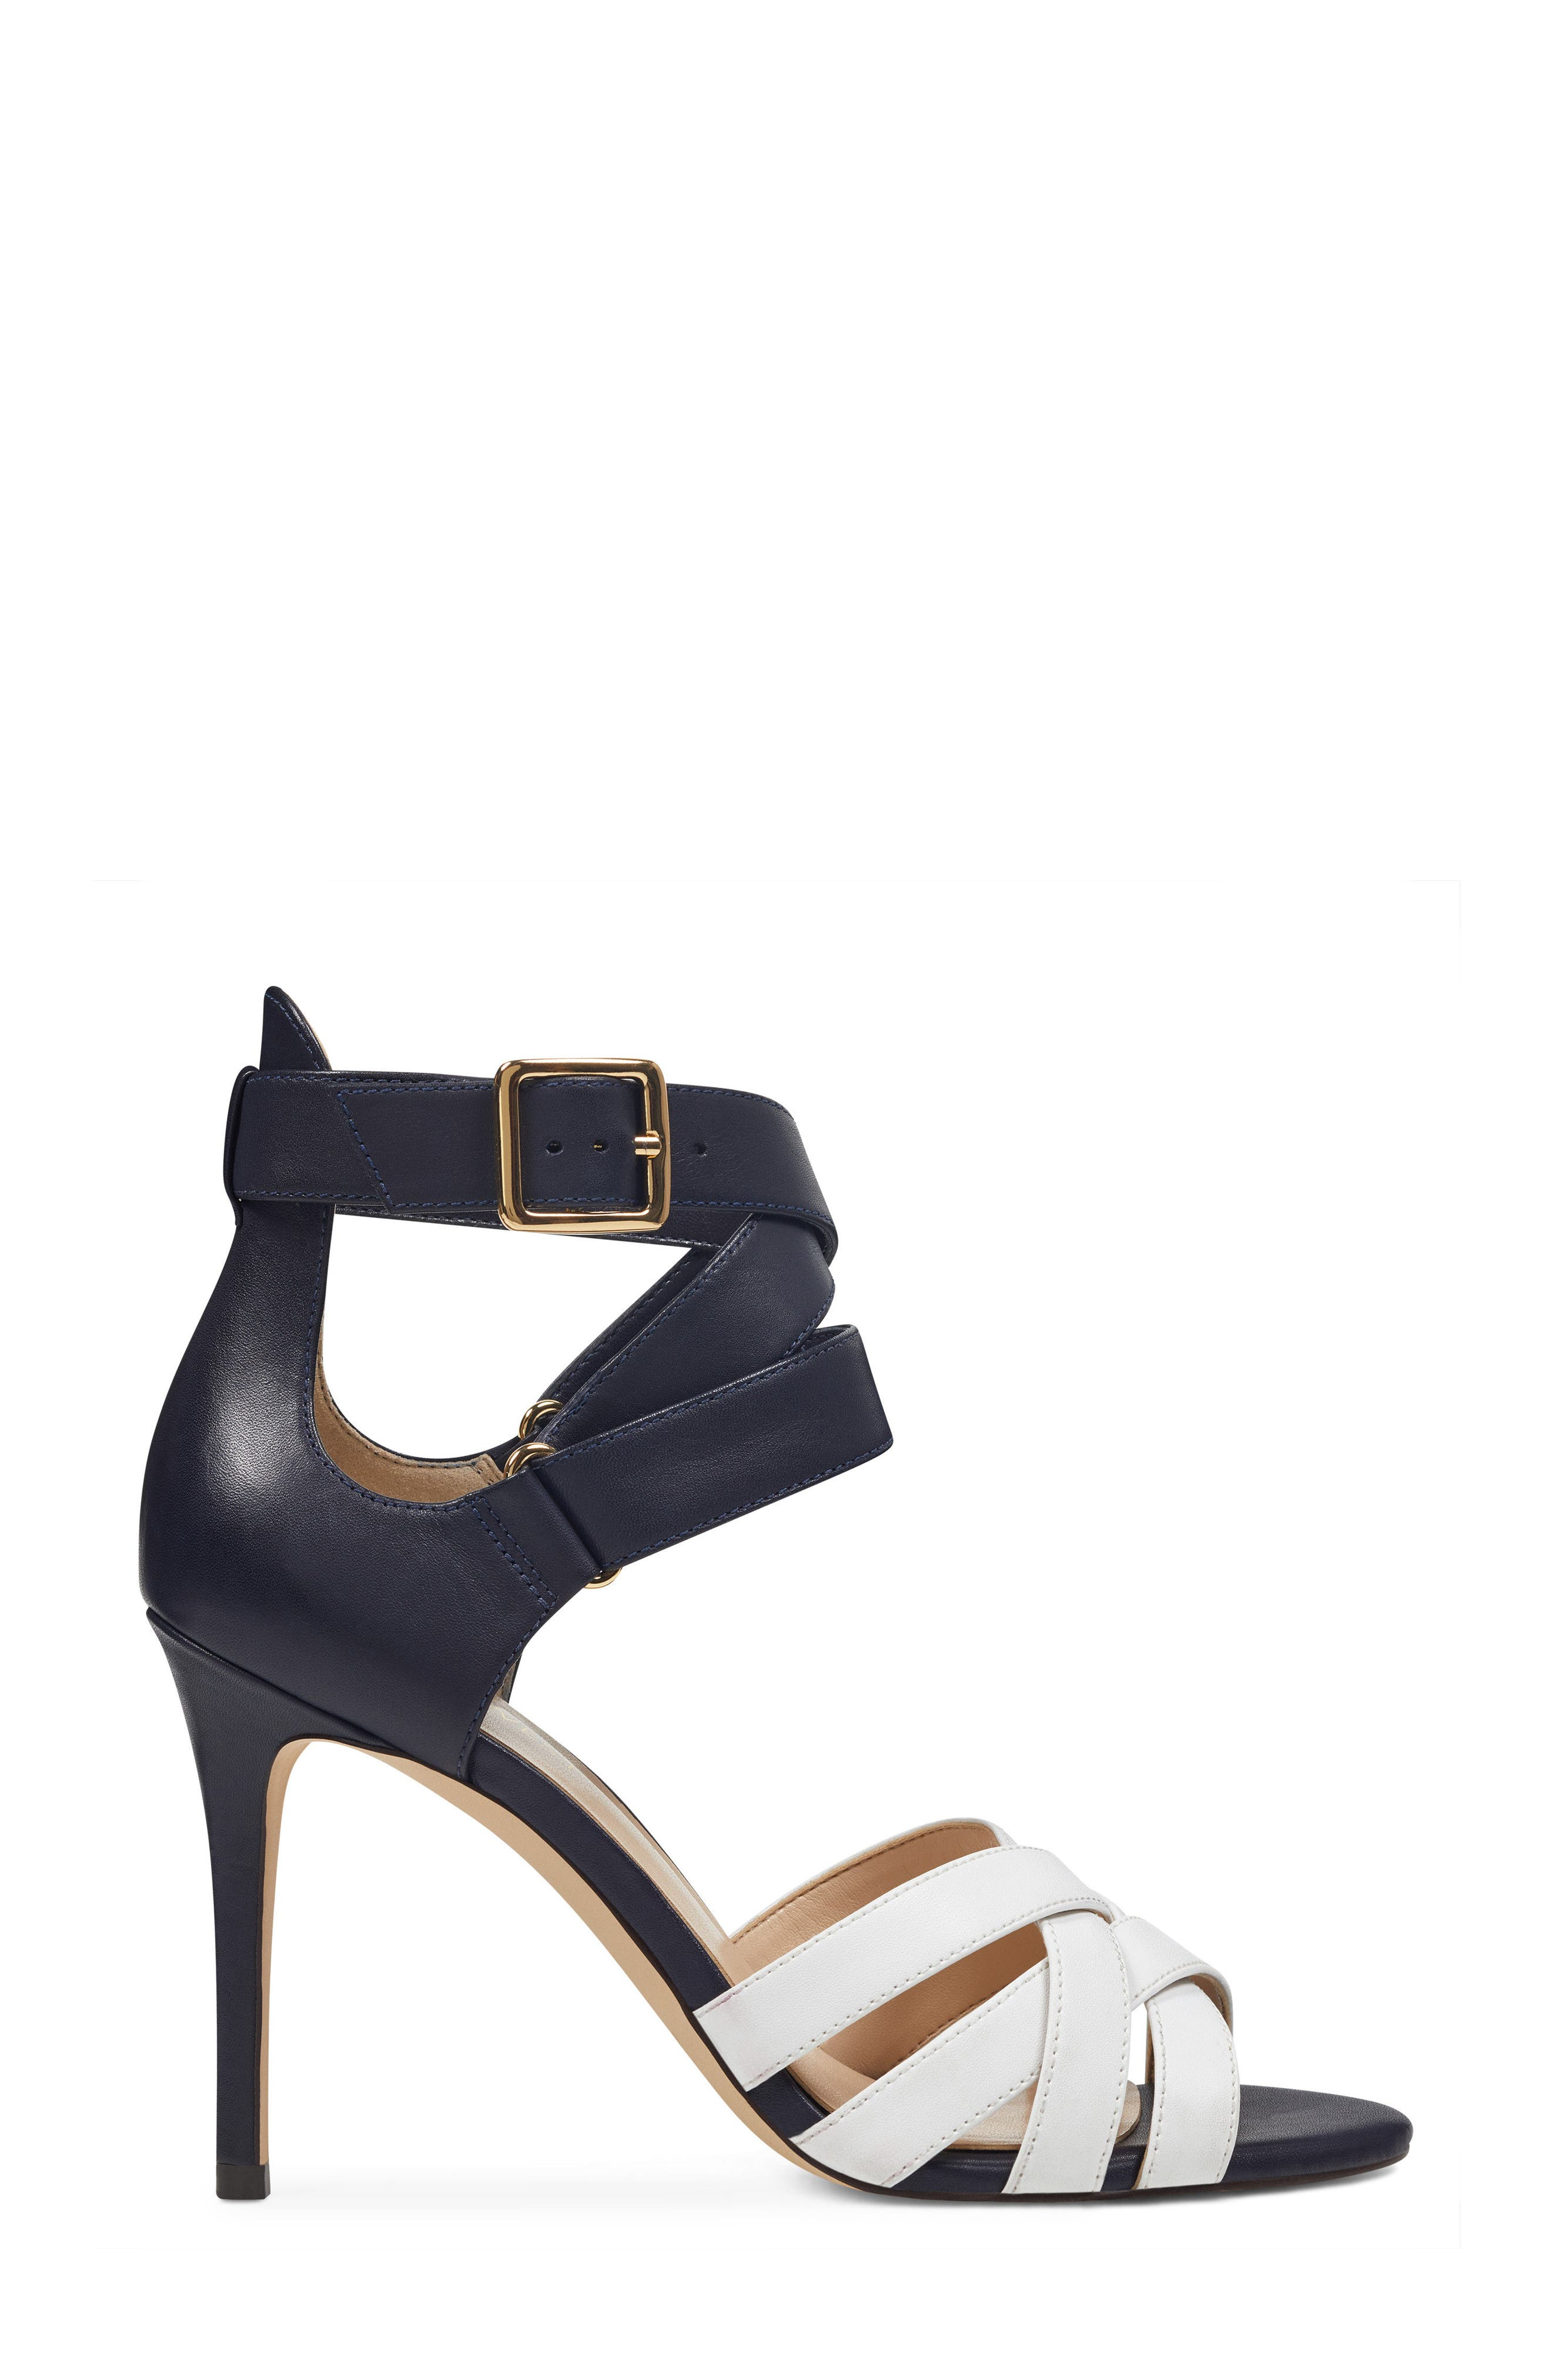 McGlynn Strappy Sandal,                             Alternate thumbnail 3, color,                             Navy/ White Leather